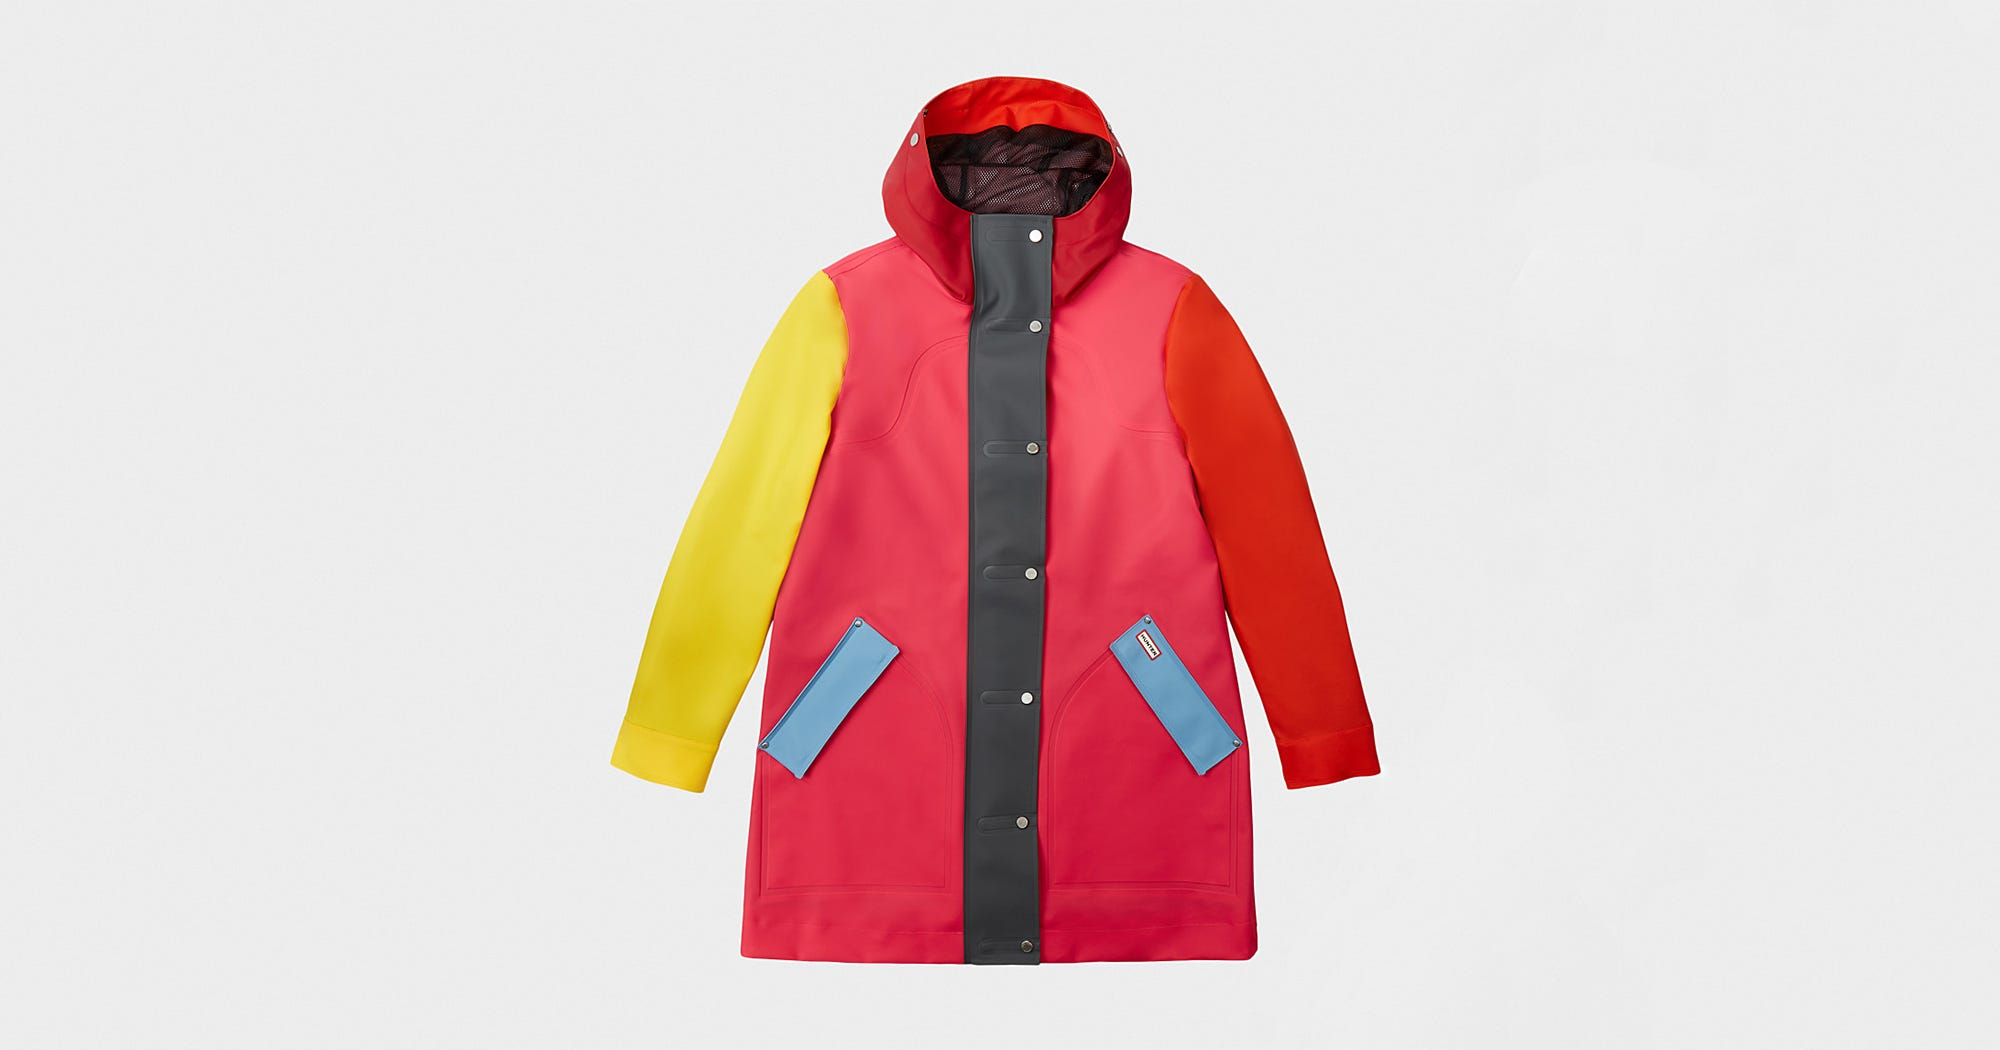 8958d6db2 Weatherproof Outerwear That Will Actually Keep You Dry